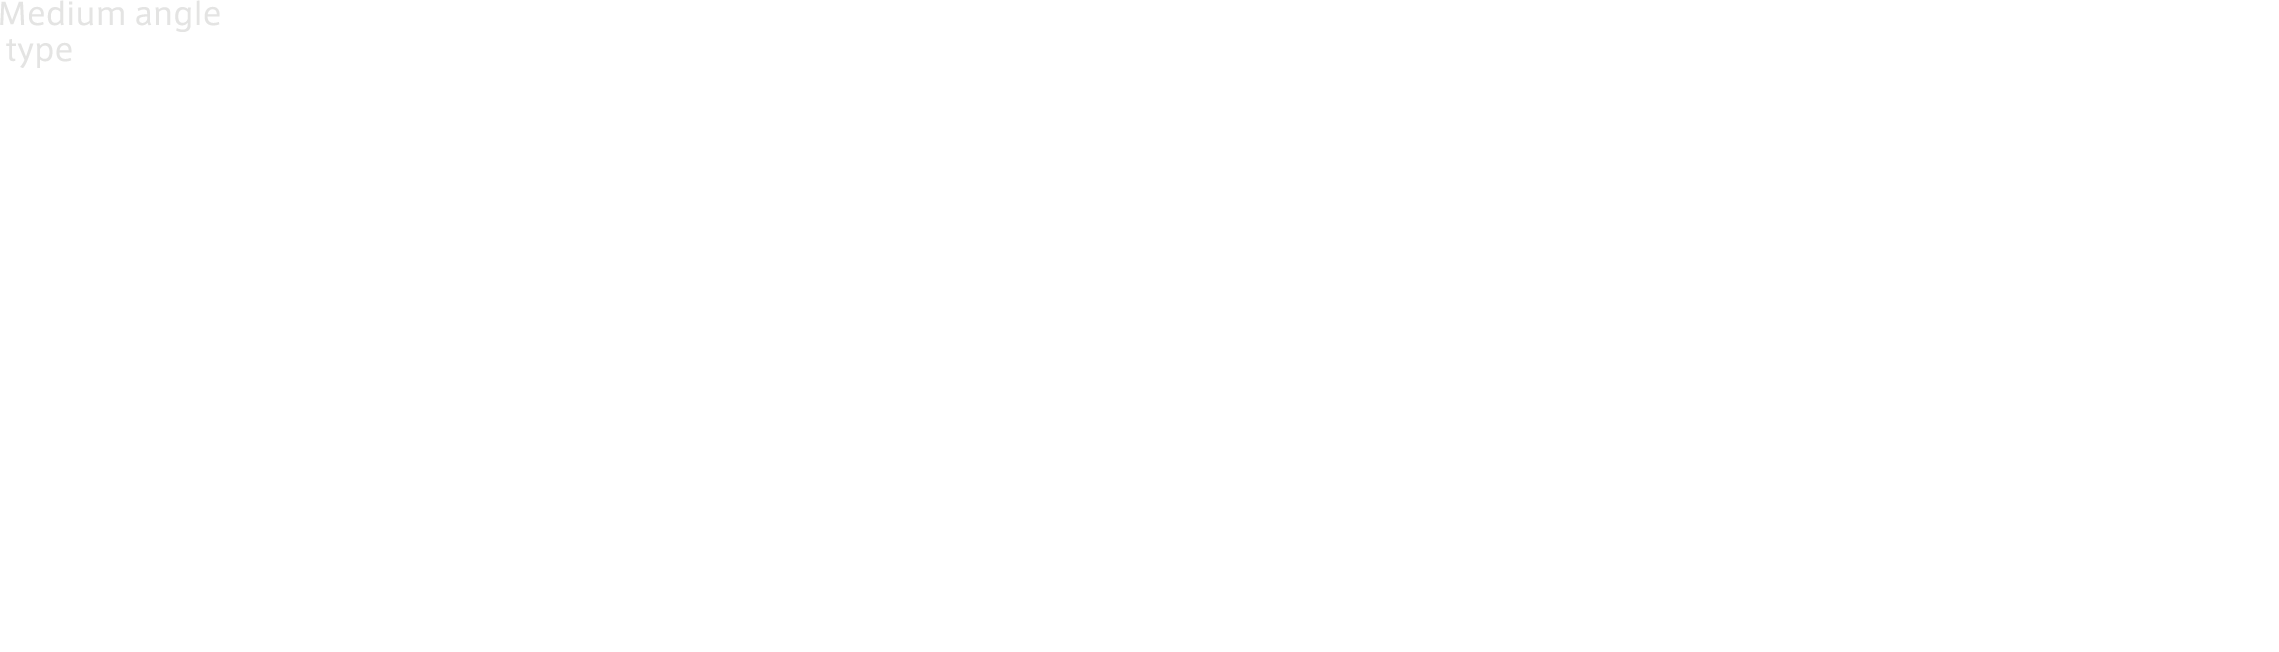 medium angle type spec list